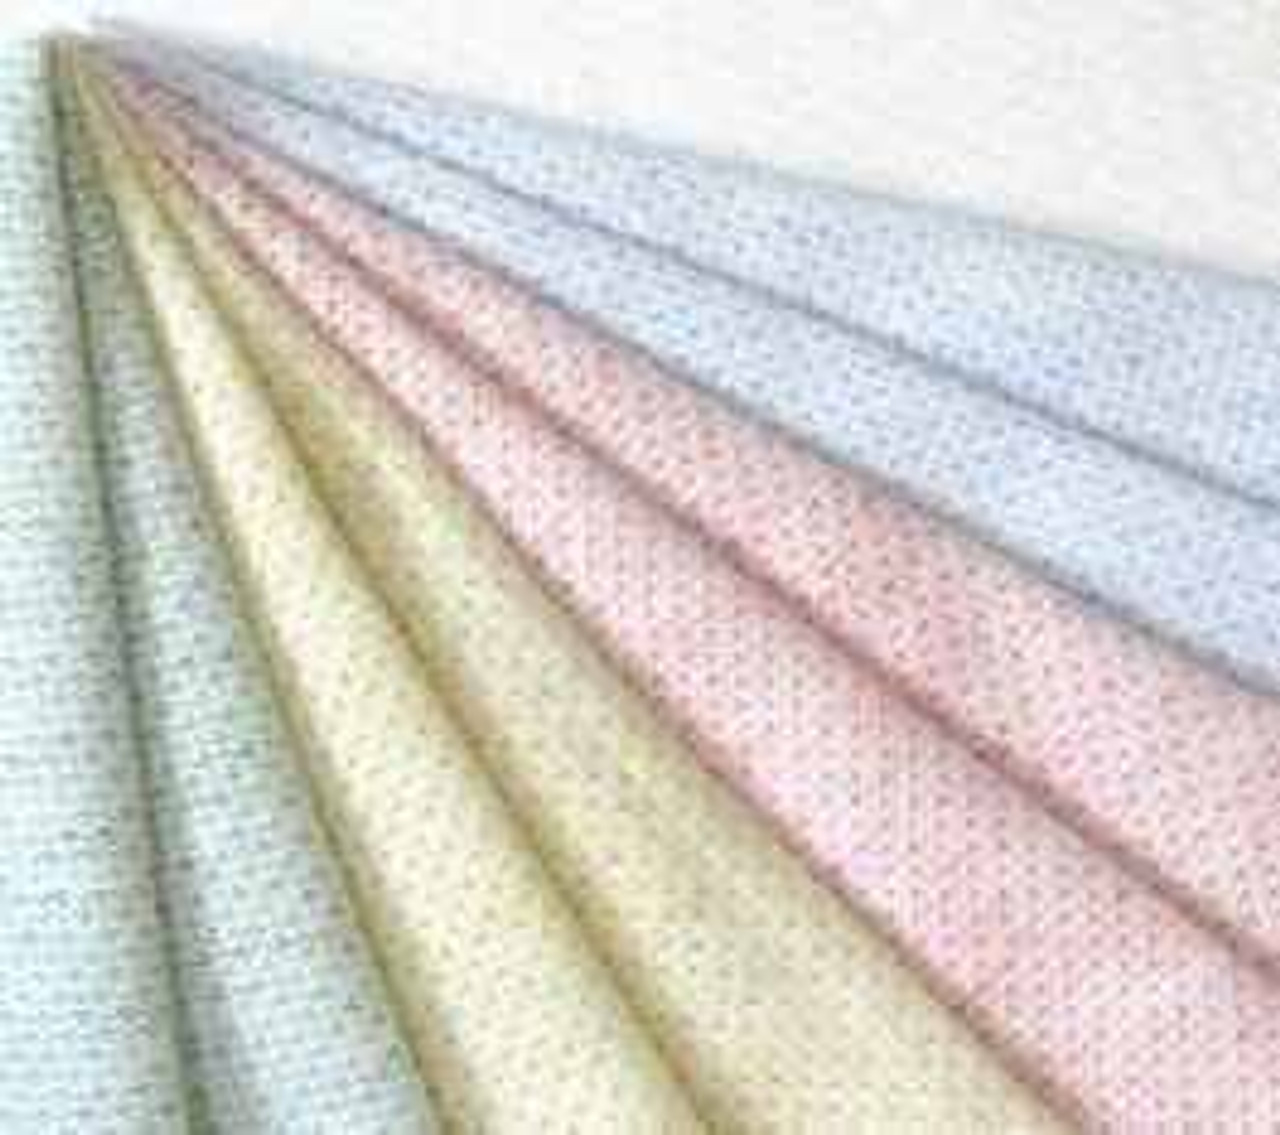 Semi Fitted Top Sheet or HealthMesh knit fabric